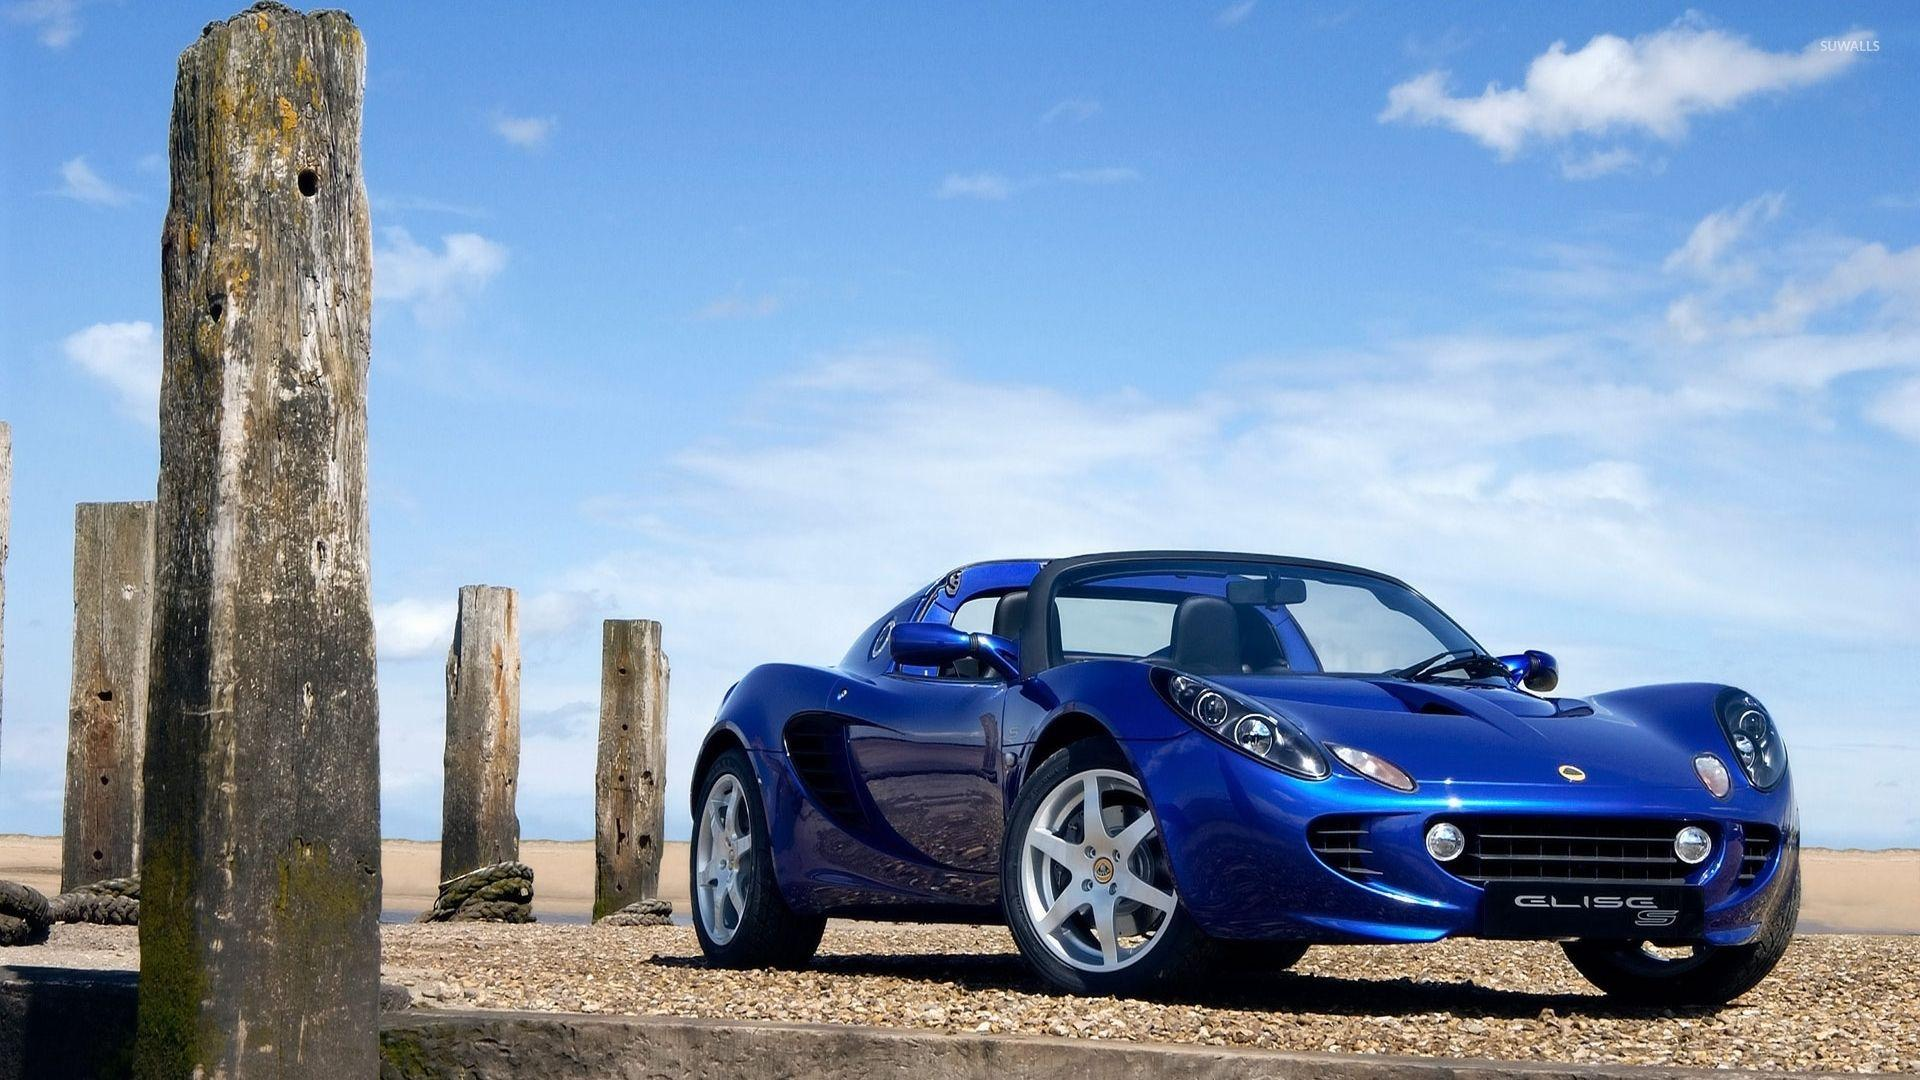 Lotus New Concept And New Super Car Wallpaper